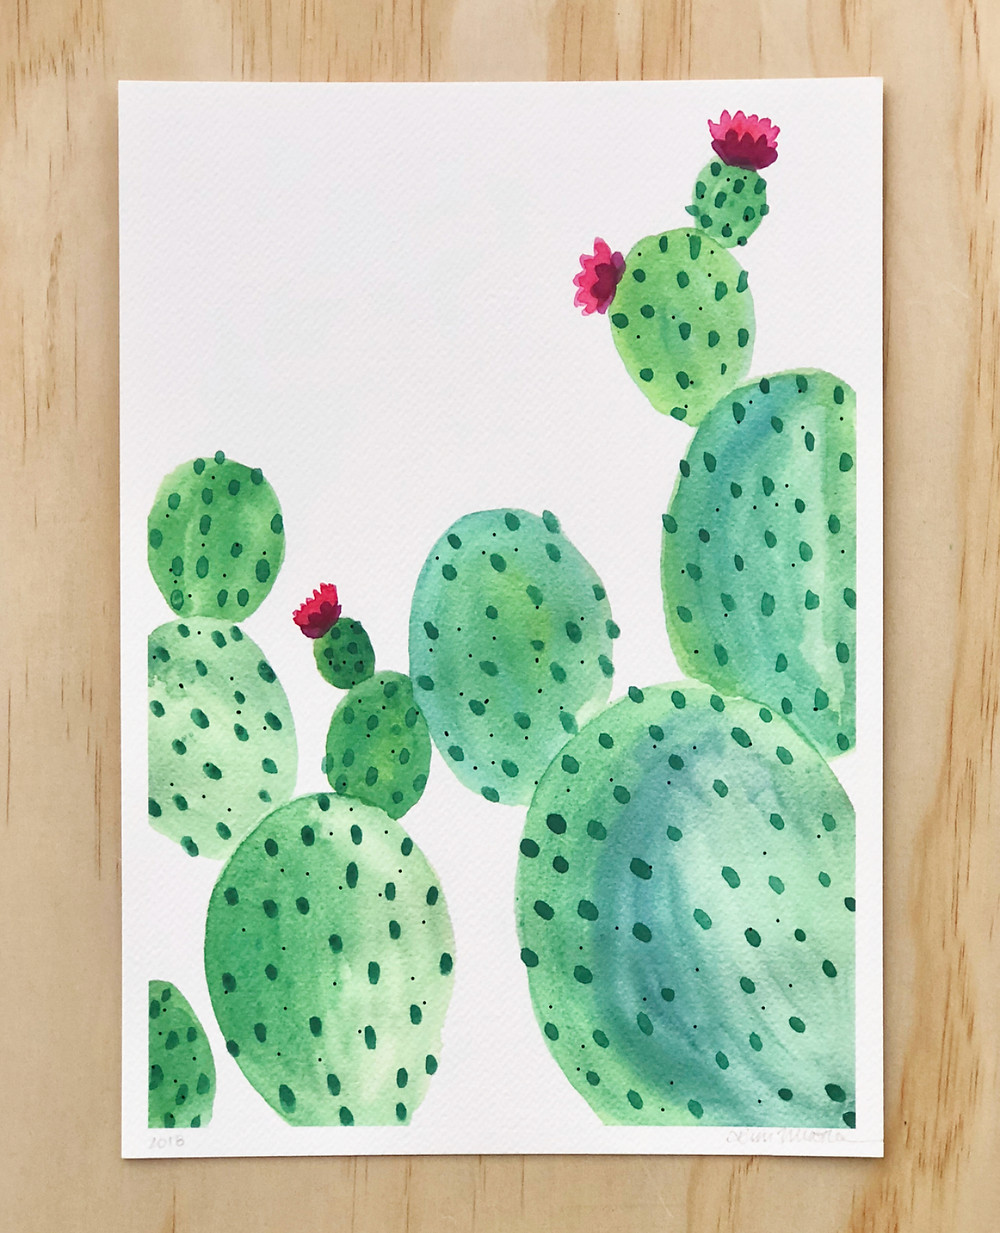 Prickly Beauty / Prickly Pear Cactus Print